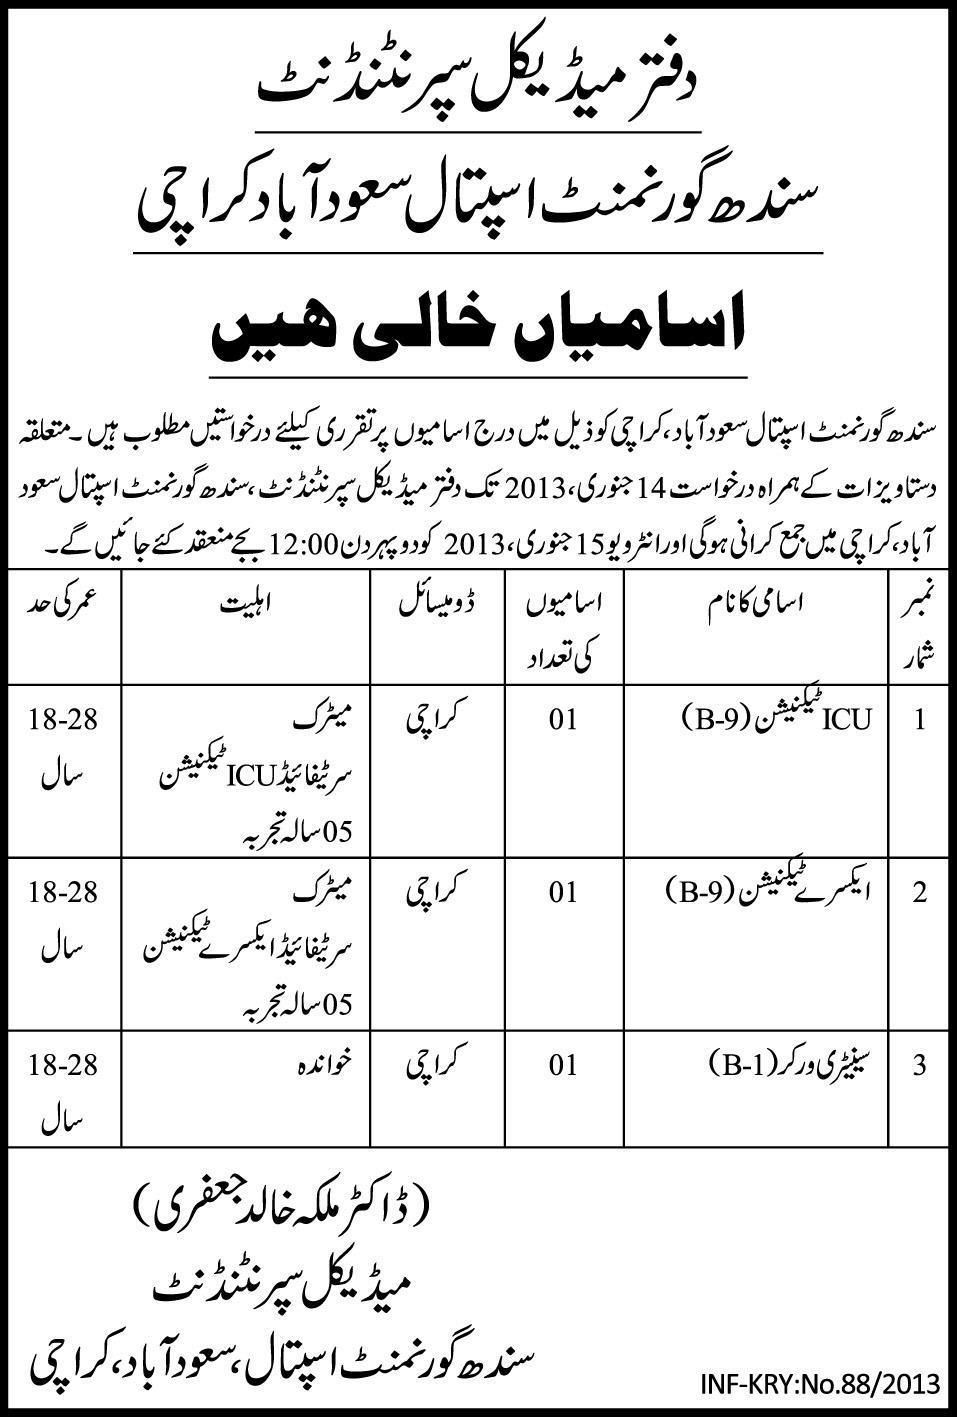 sindh government hospital saudabad karachi jobs Sindh Government Hospital Saudabad Karachi Jobs